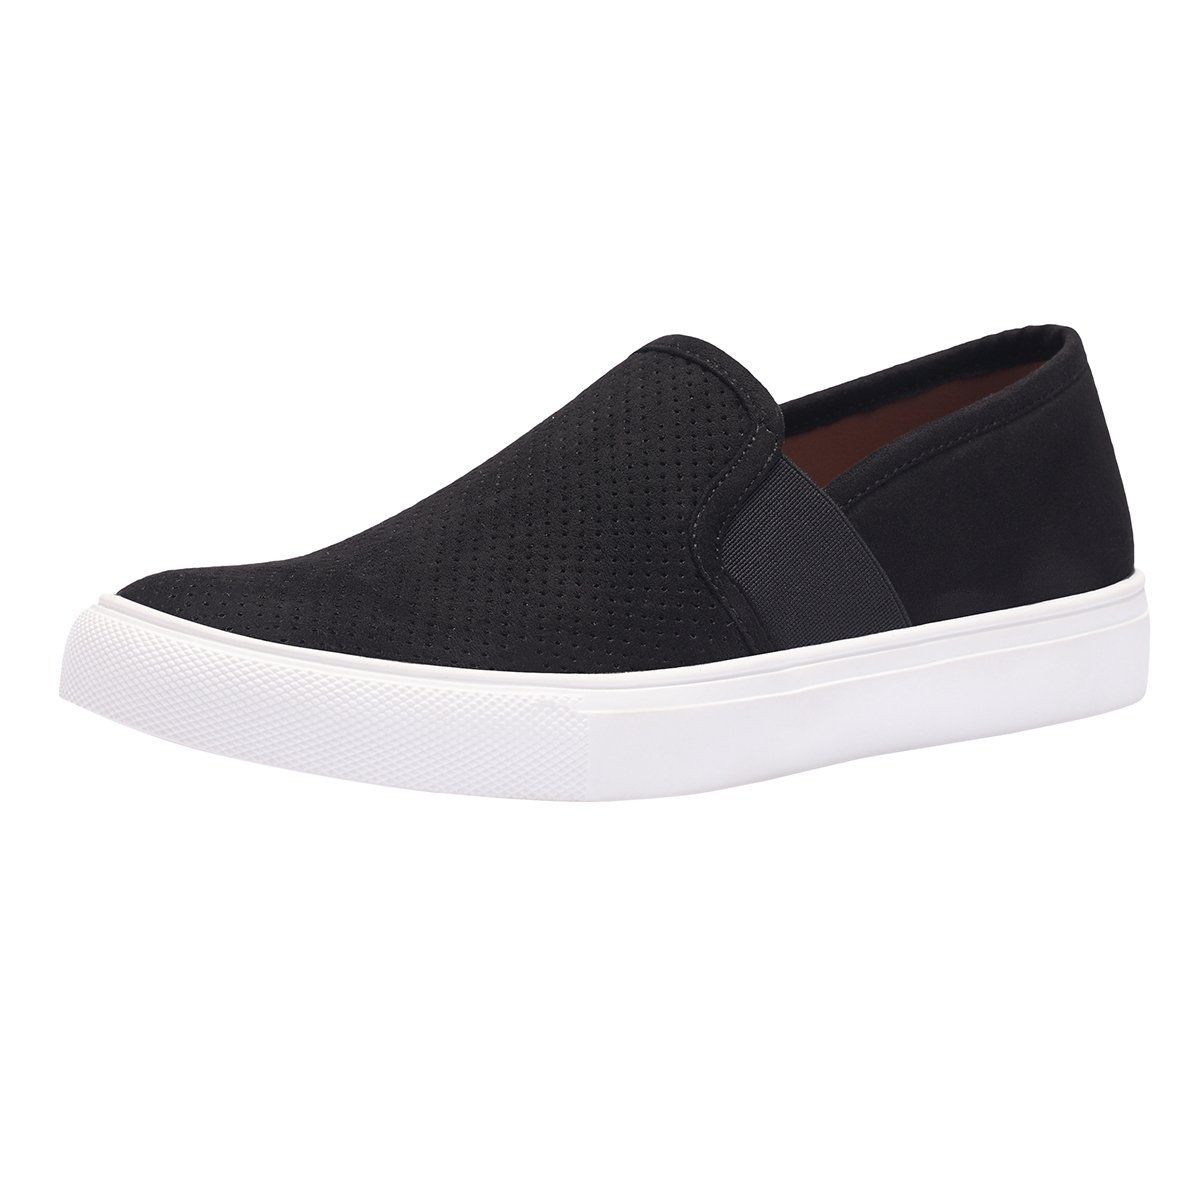 Sofree Womens Fashion Sneaker Casual